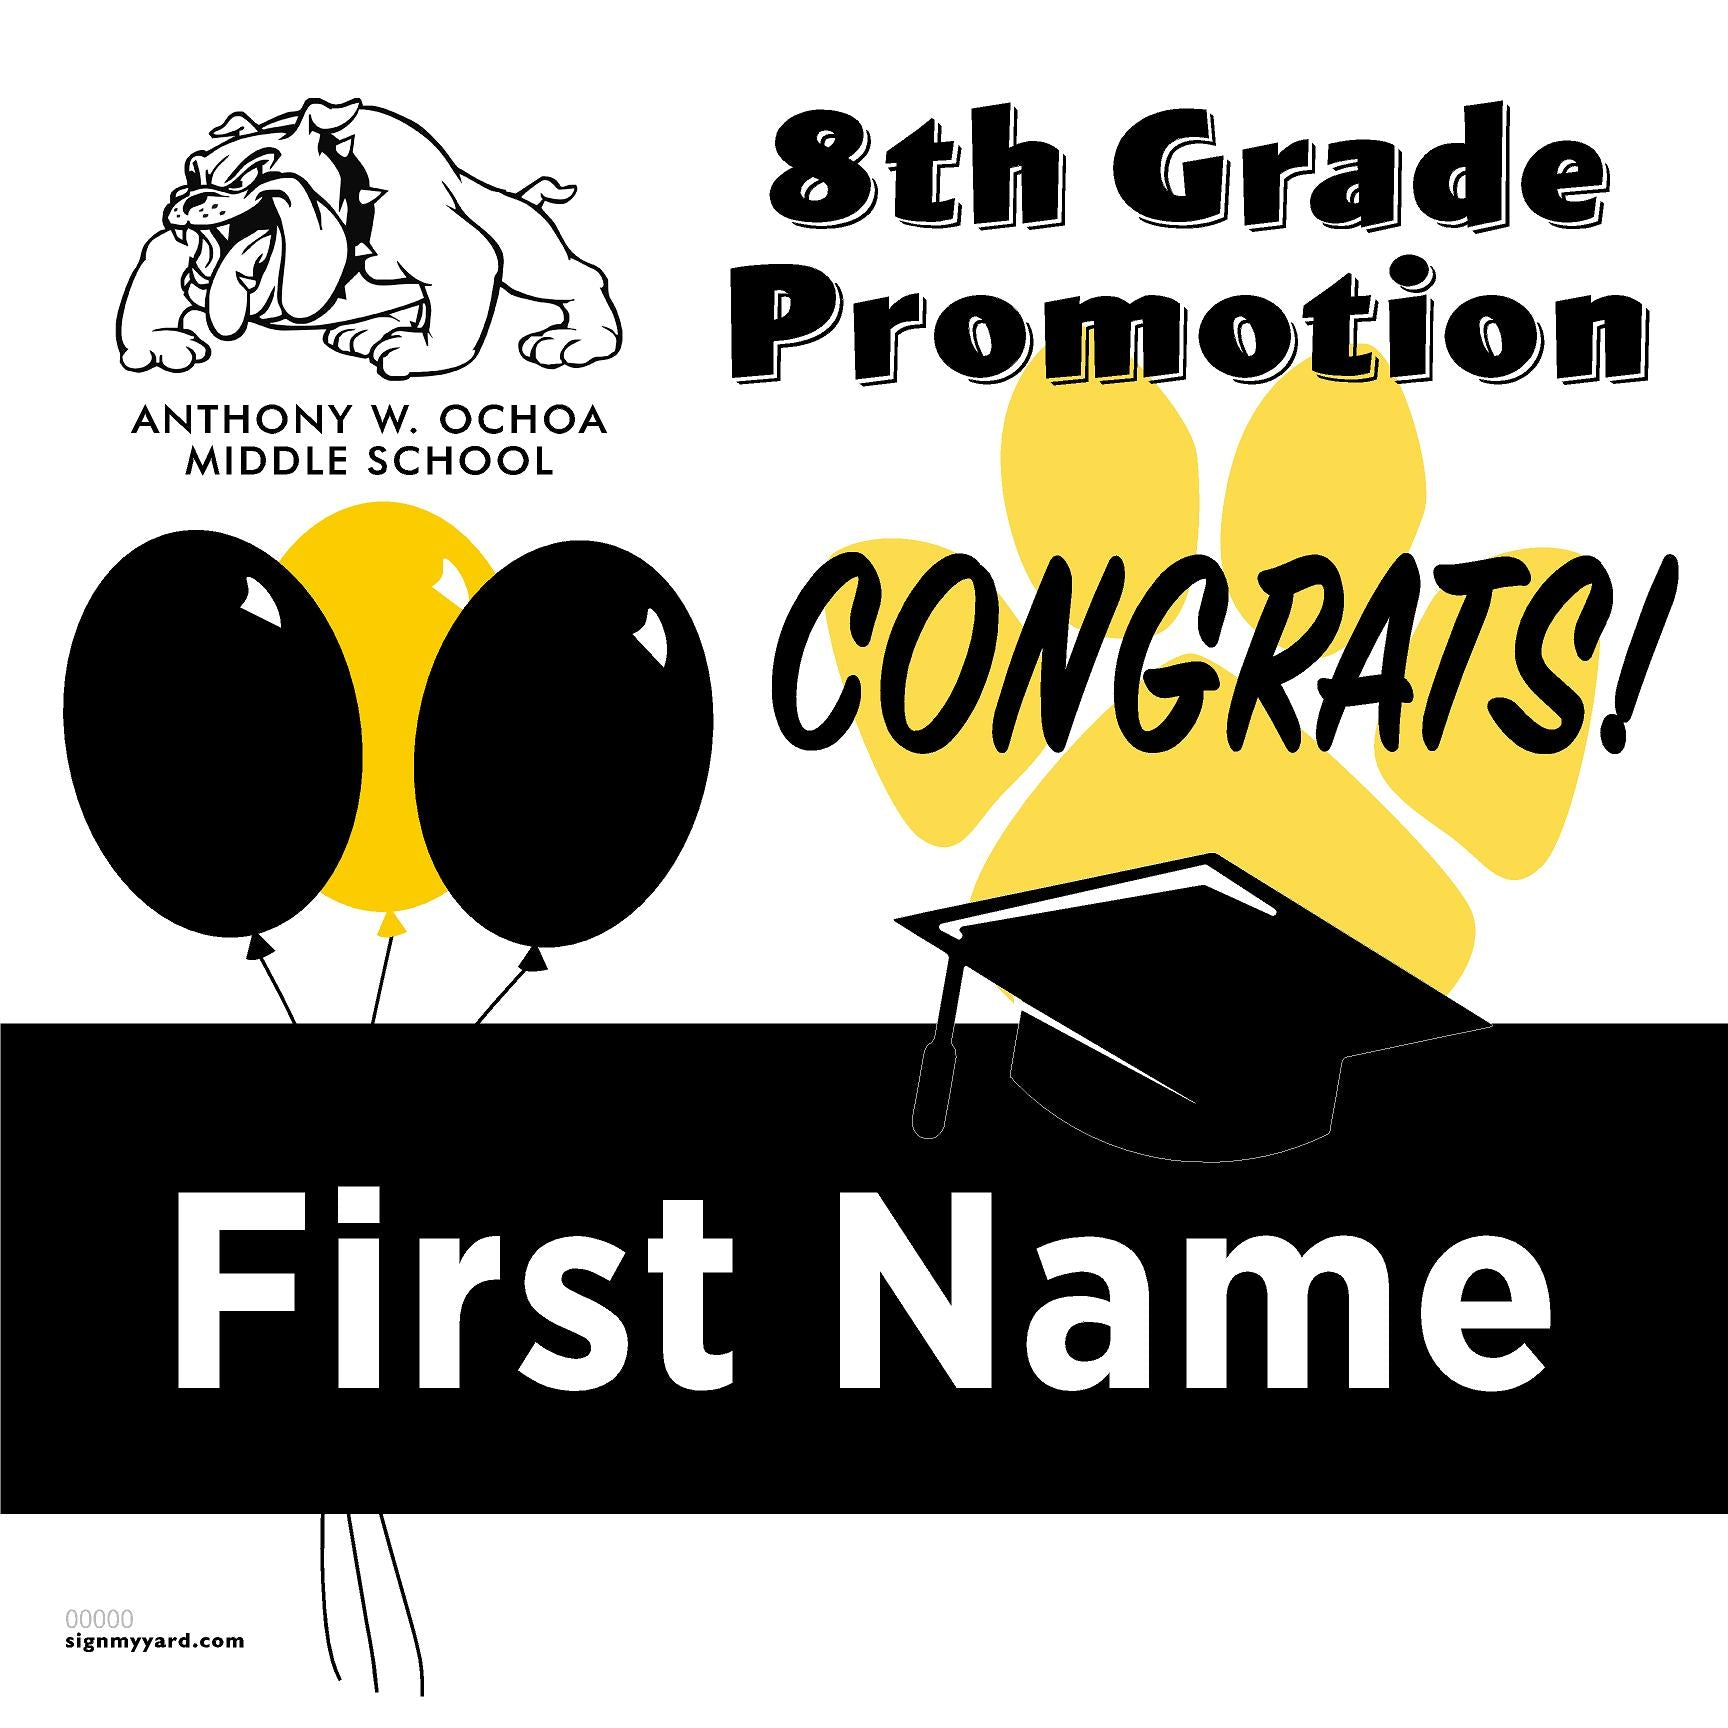 Anthony W. Ochoa Middle School 8th Grade Promotion 24x24 #shineon2024 Yard Sign (Option A)